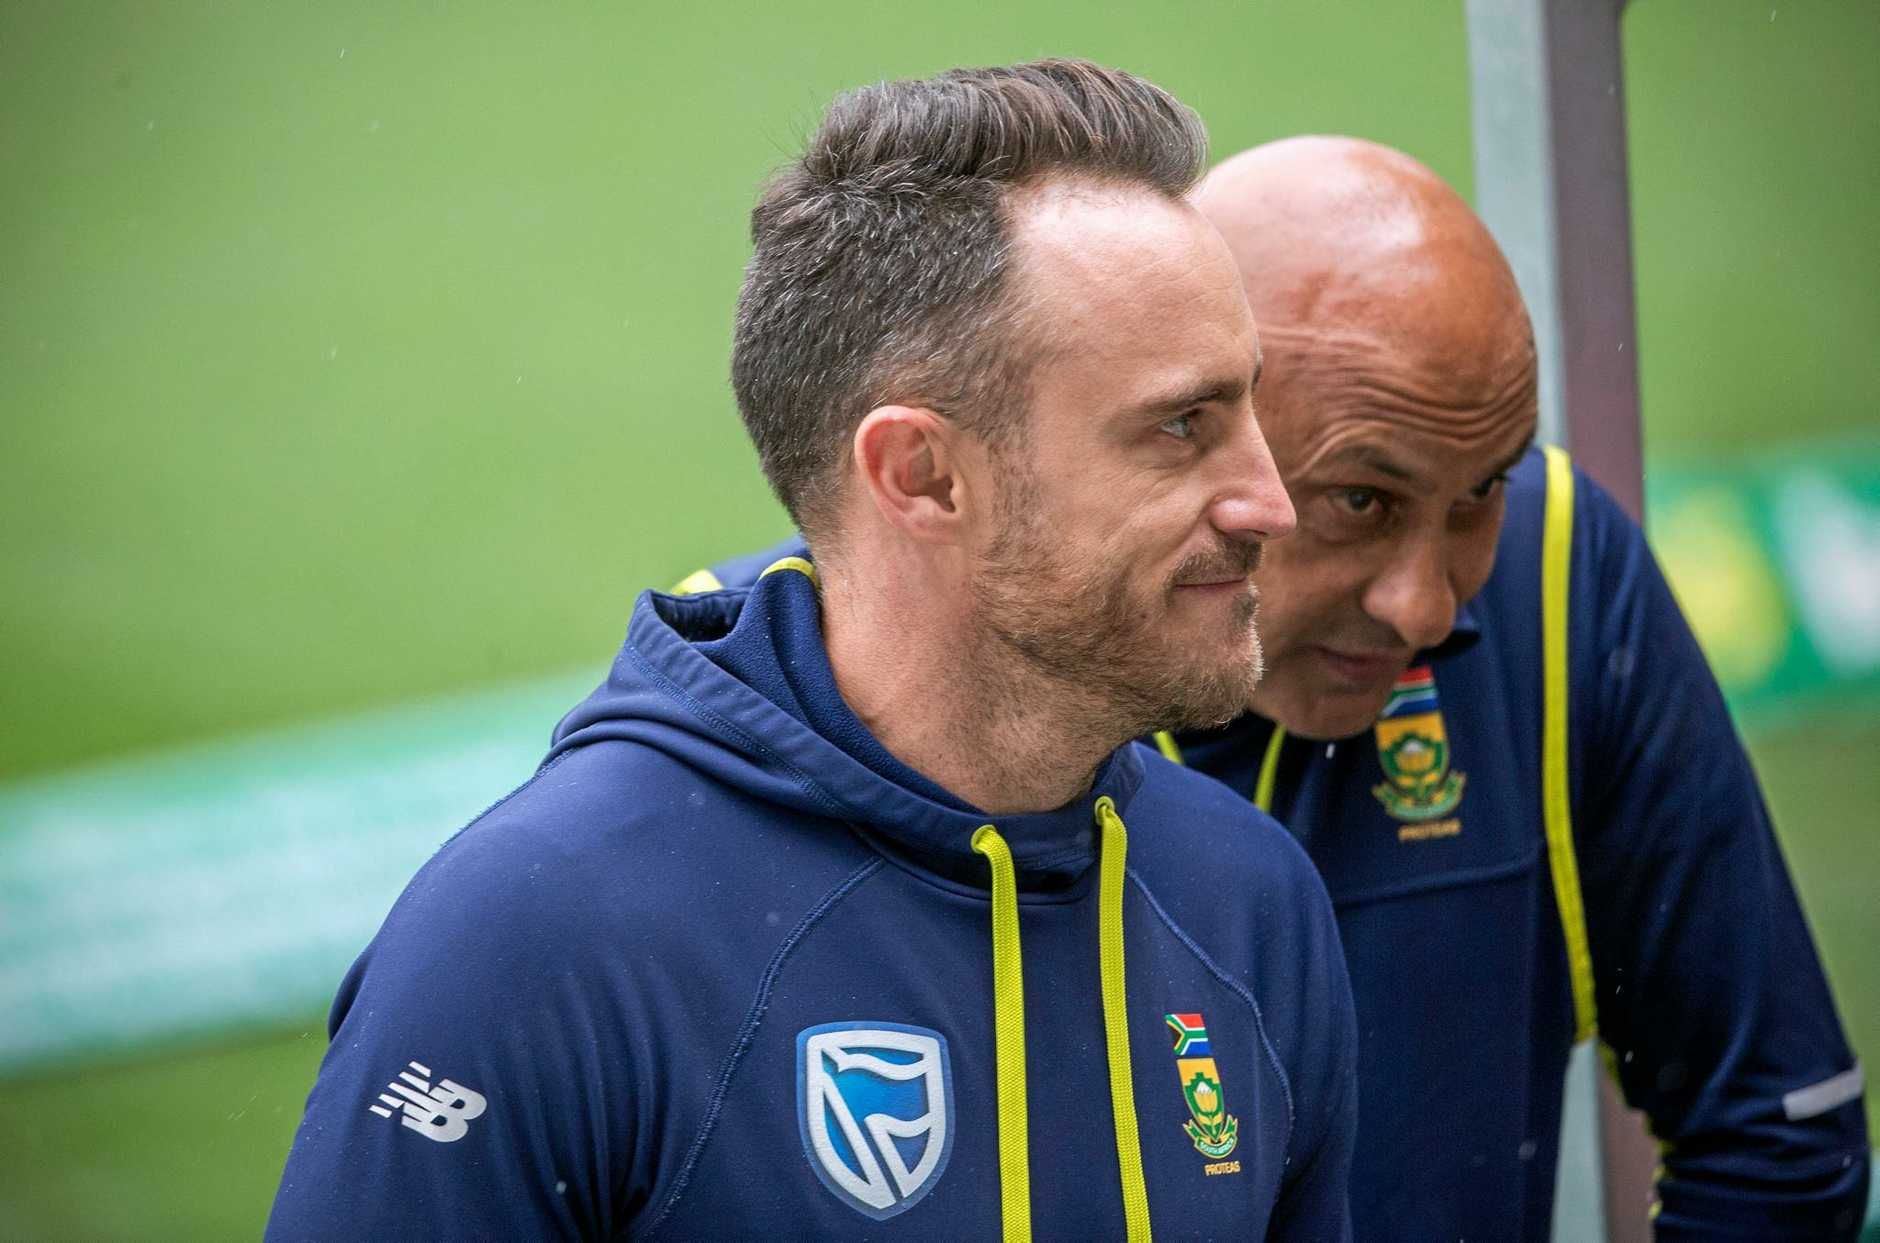 South African cricket captain Faf du Plessis is clear to play in the third Test beginning in Adelaide tomorrow despite being found guilty of ball tampering.